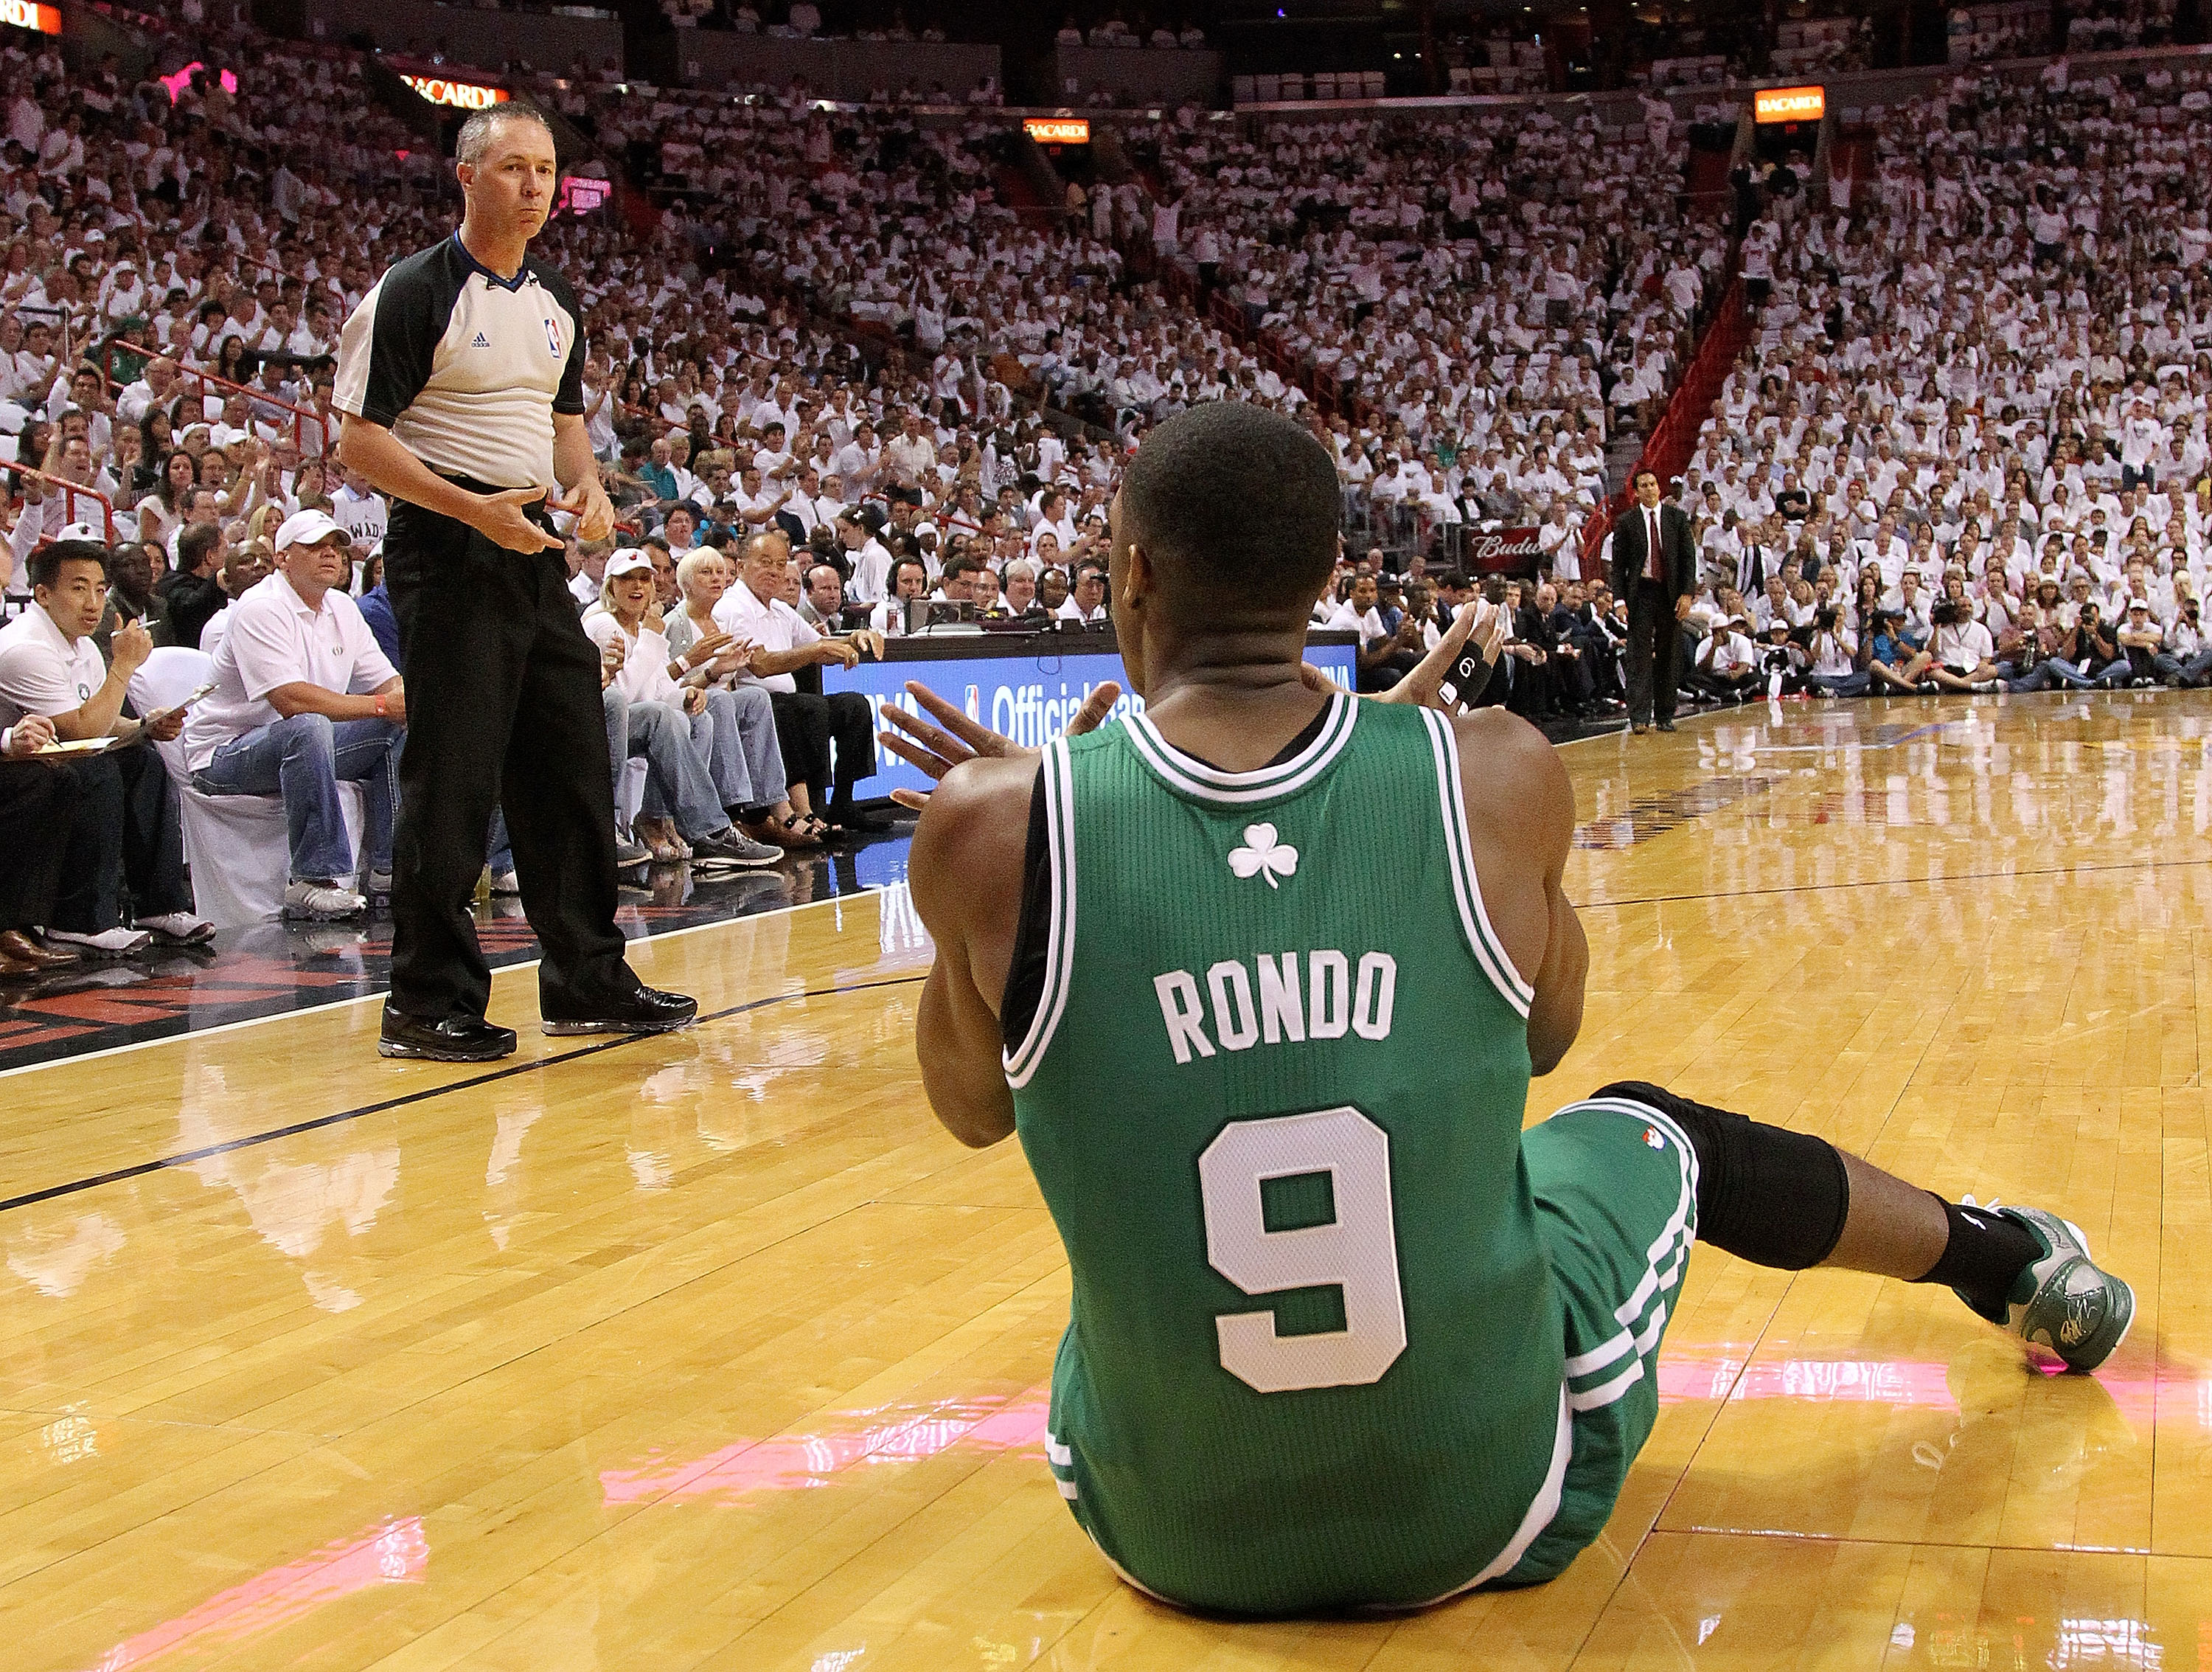 Rajon Rondo was picked #21 by the Suns in the 2006 NBA Draft